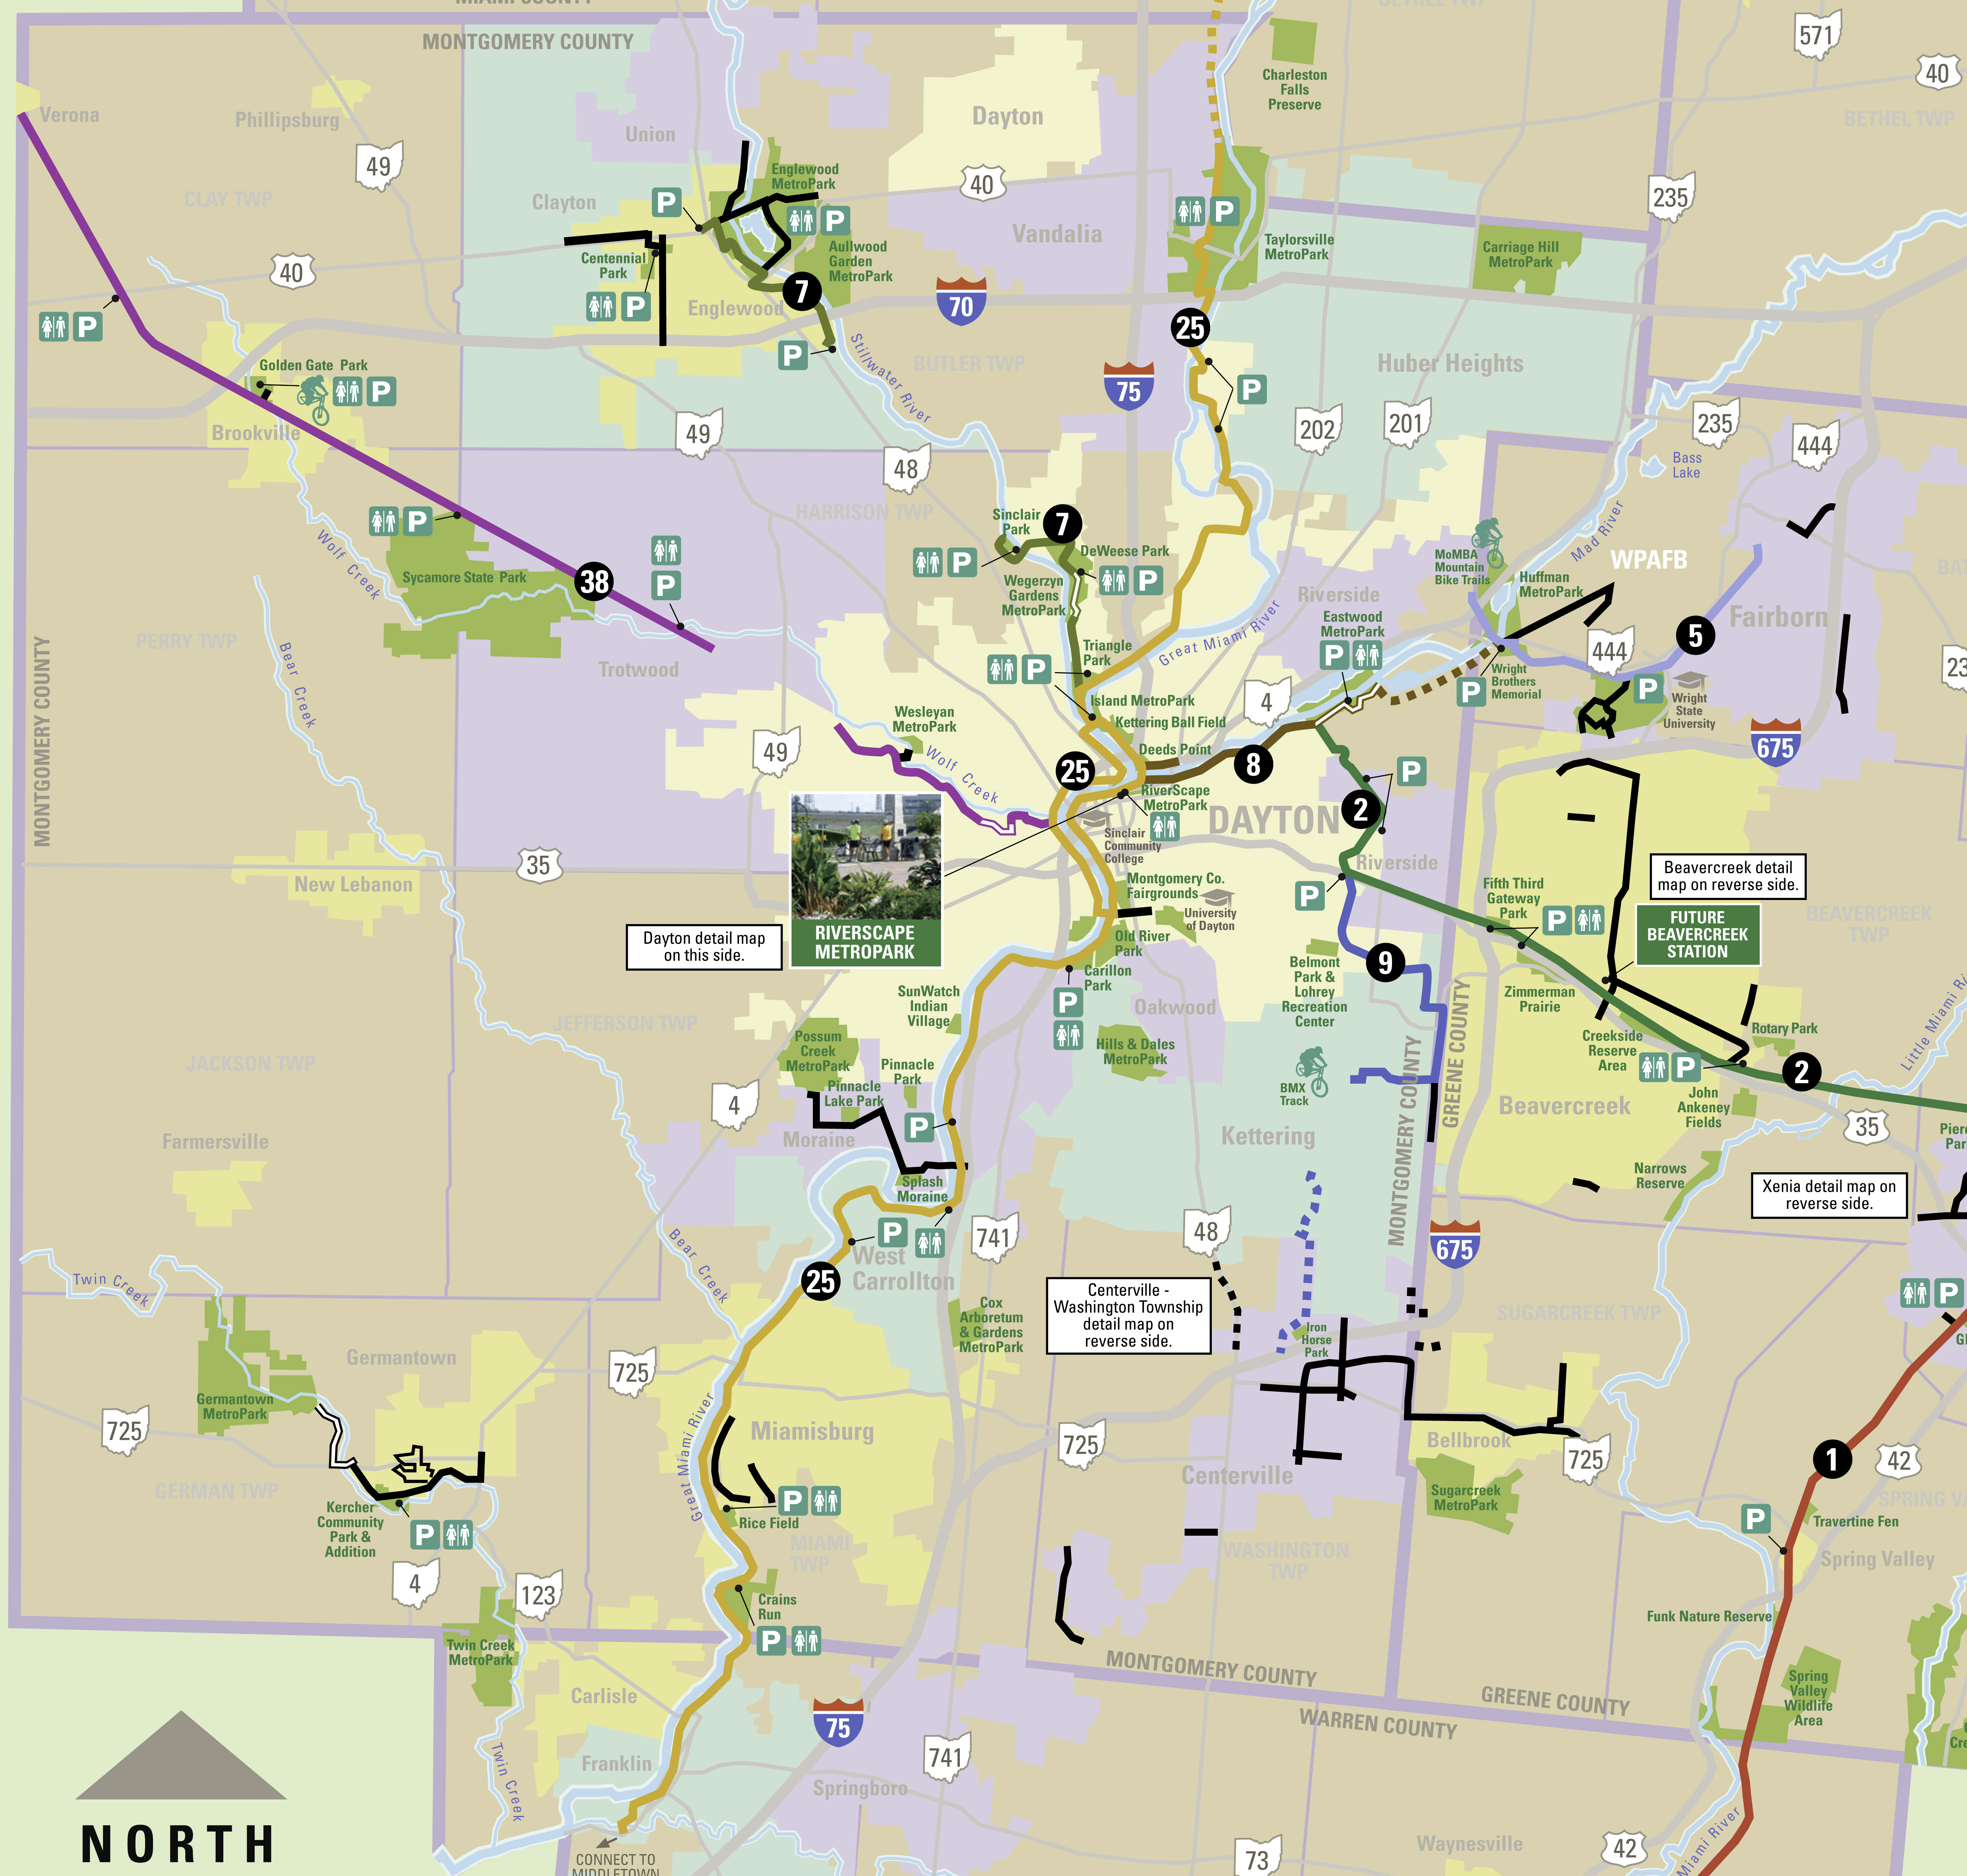 Dayton Regional Bike Trail Map in Ohio image   Free stock photo